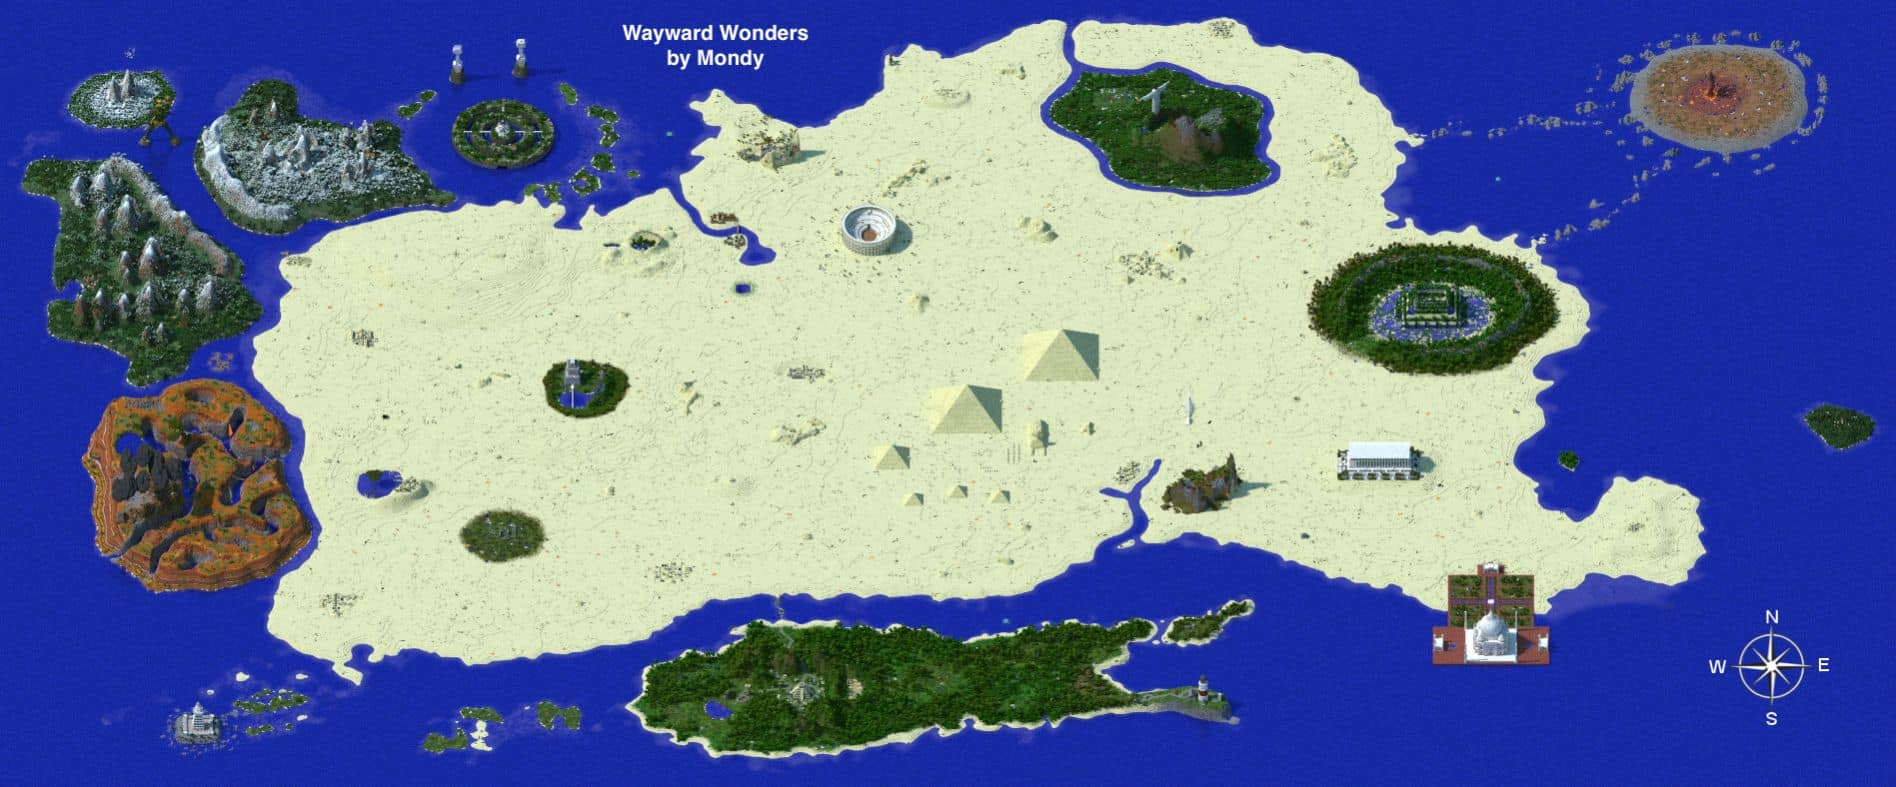 wayward wonders 1.8.3 world map